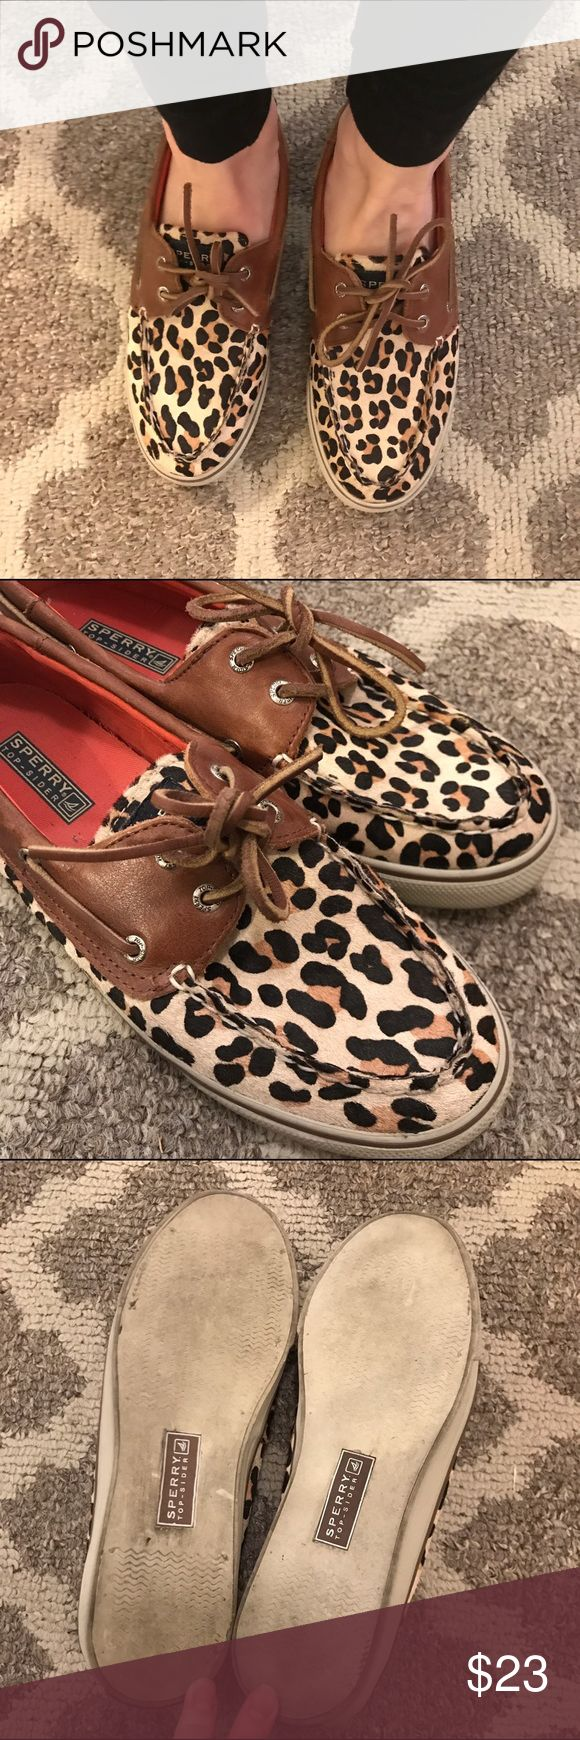 Leopard sperrys size 7.5 Cute leopard fur sperrys with leather. Show some wear on bottoms but the rest of the shoe looks perfect! Sperry Shoes Flats & Loafers